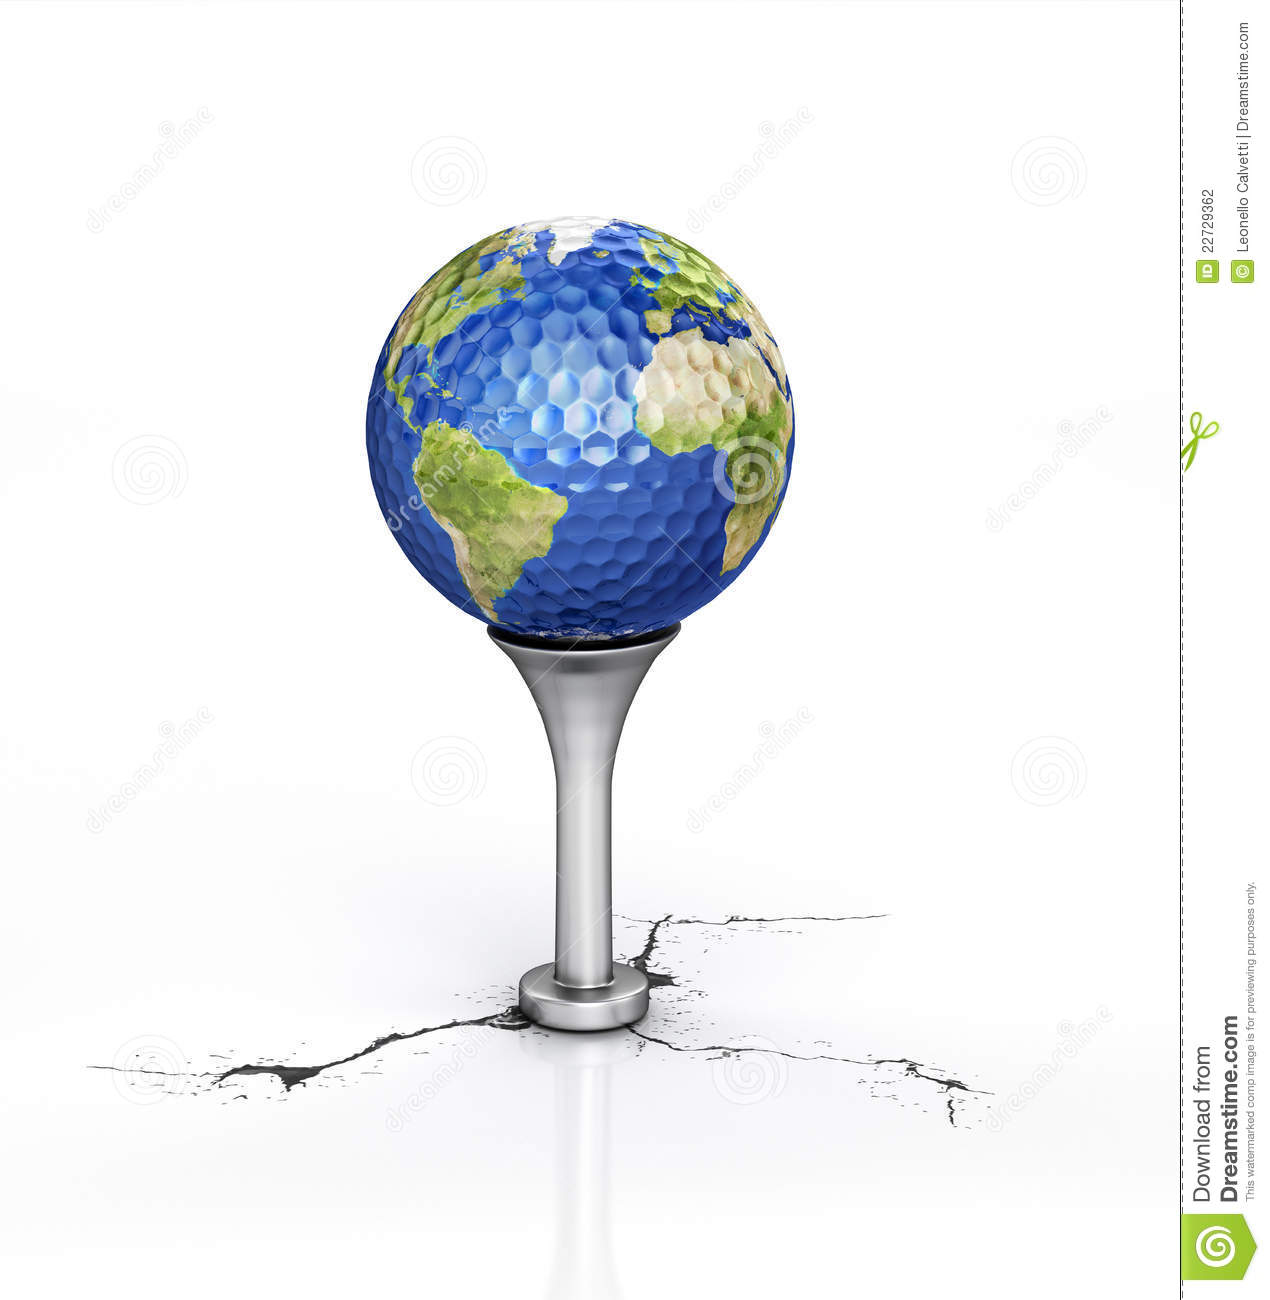 golf ball with the texture of earth on tee stock